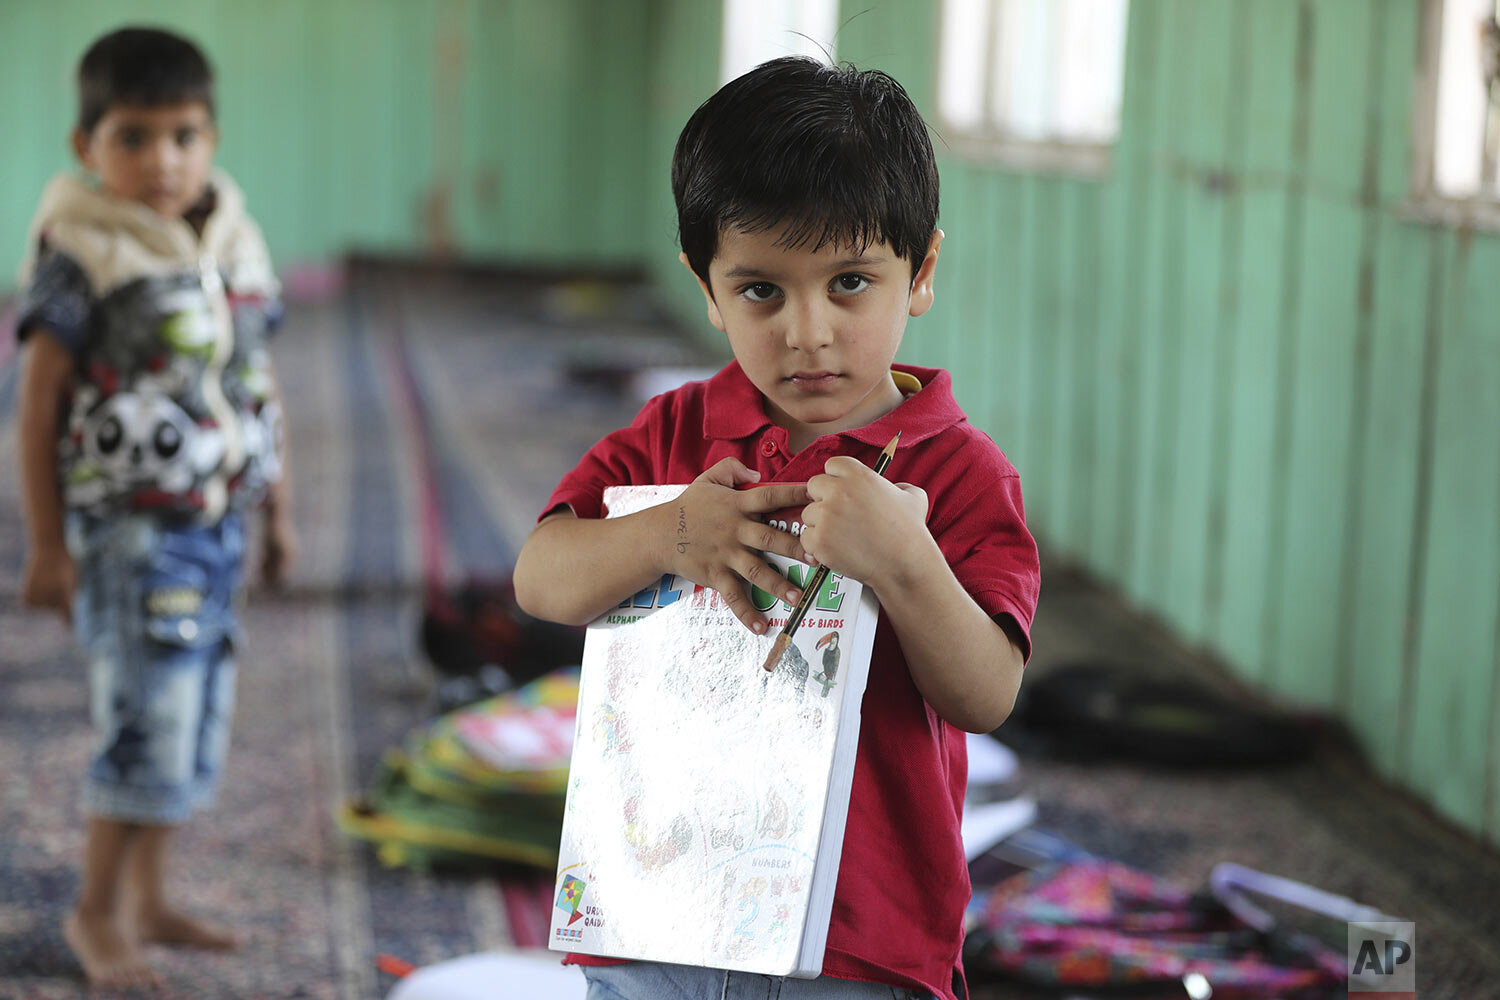 Children study inside a local mosque during a free classe by locals in Srinagar, Indian controlled Kashmir, Thursday, Sept. 19, 2019. (AP Photo/Mukhtar Khan)